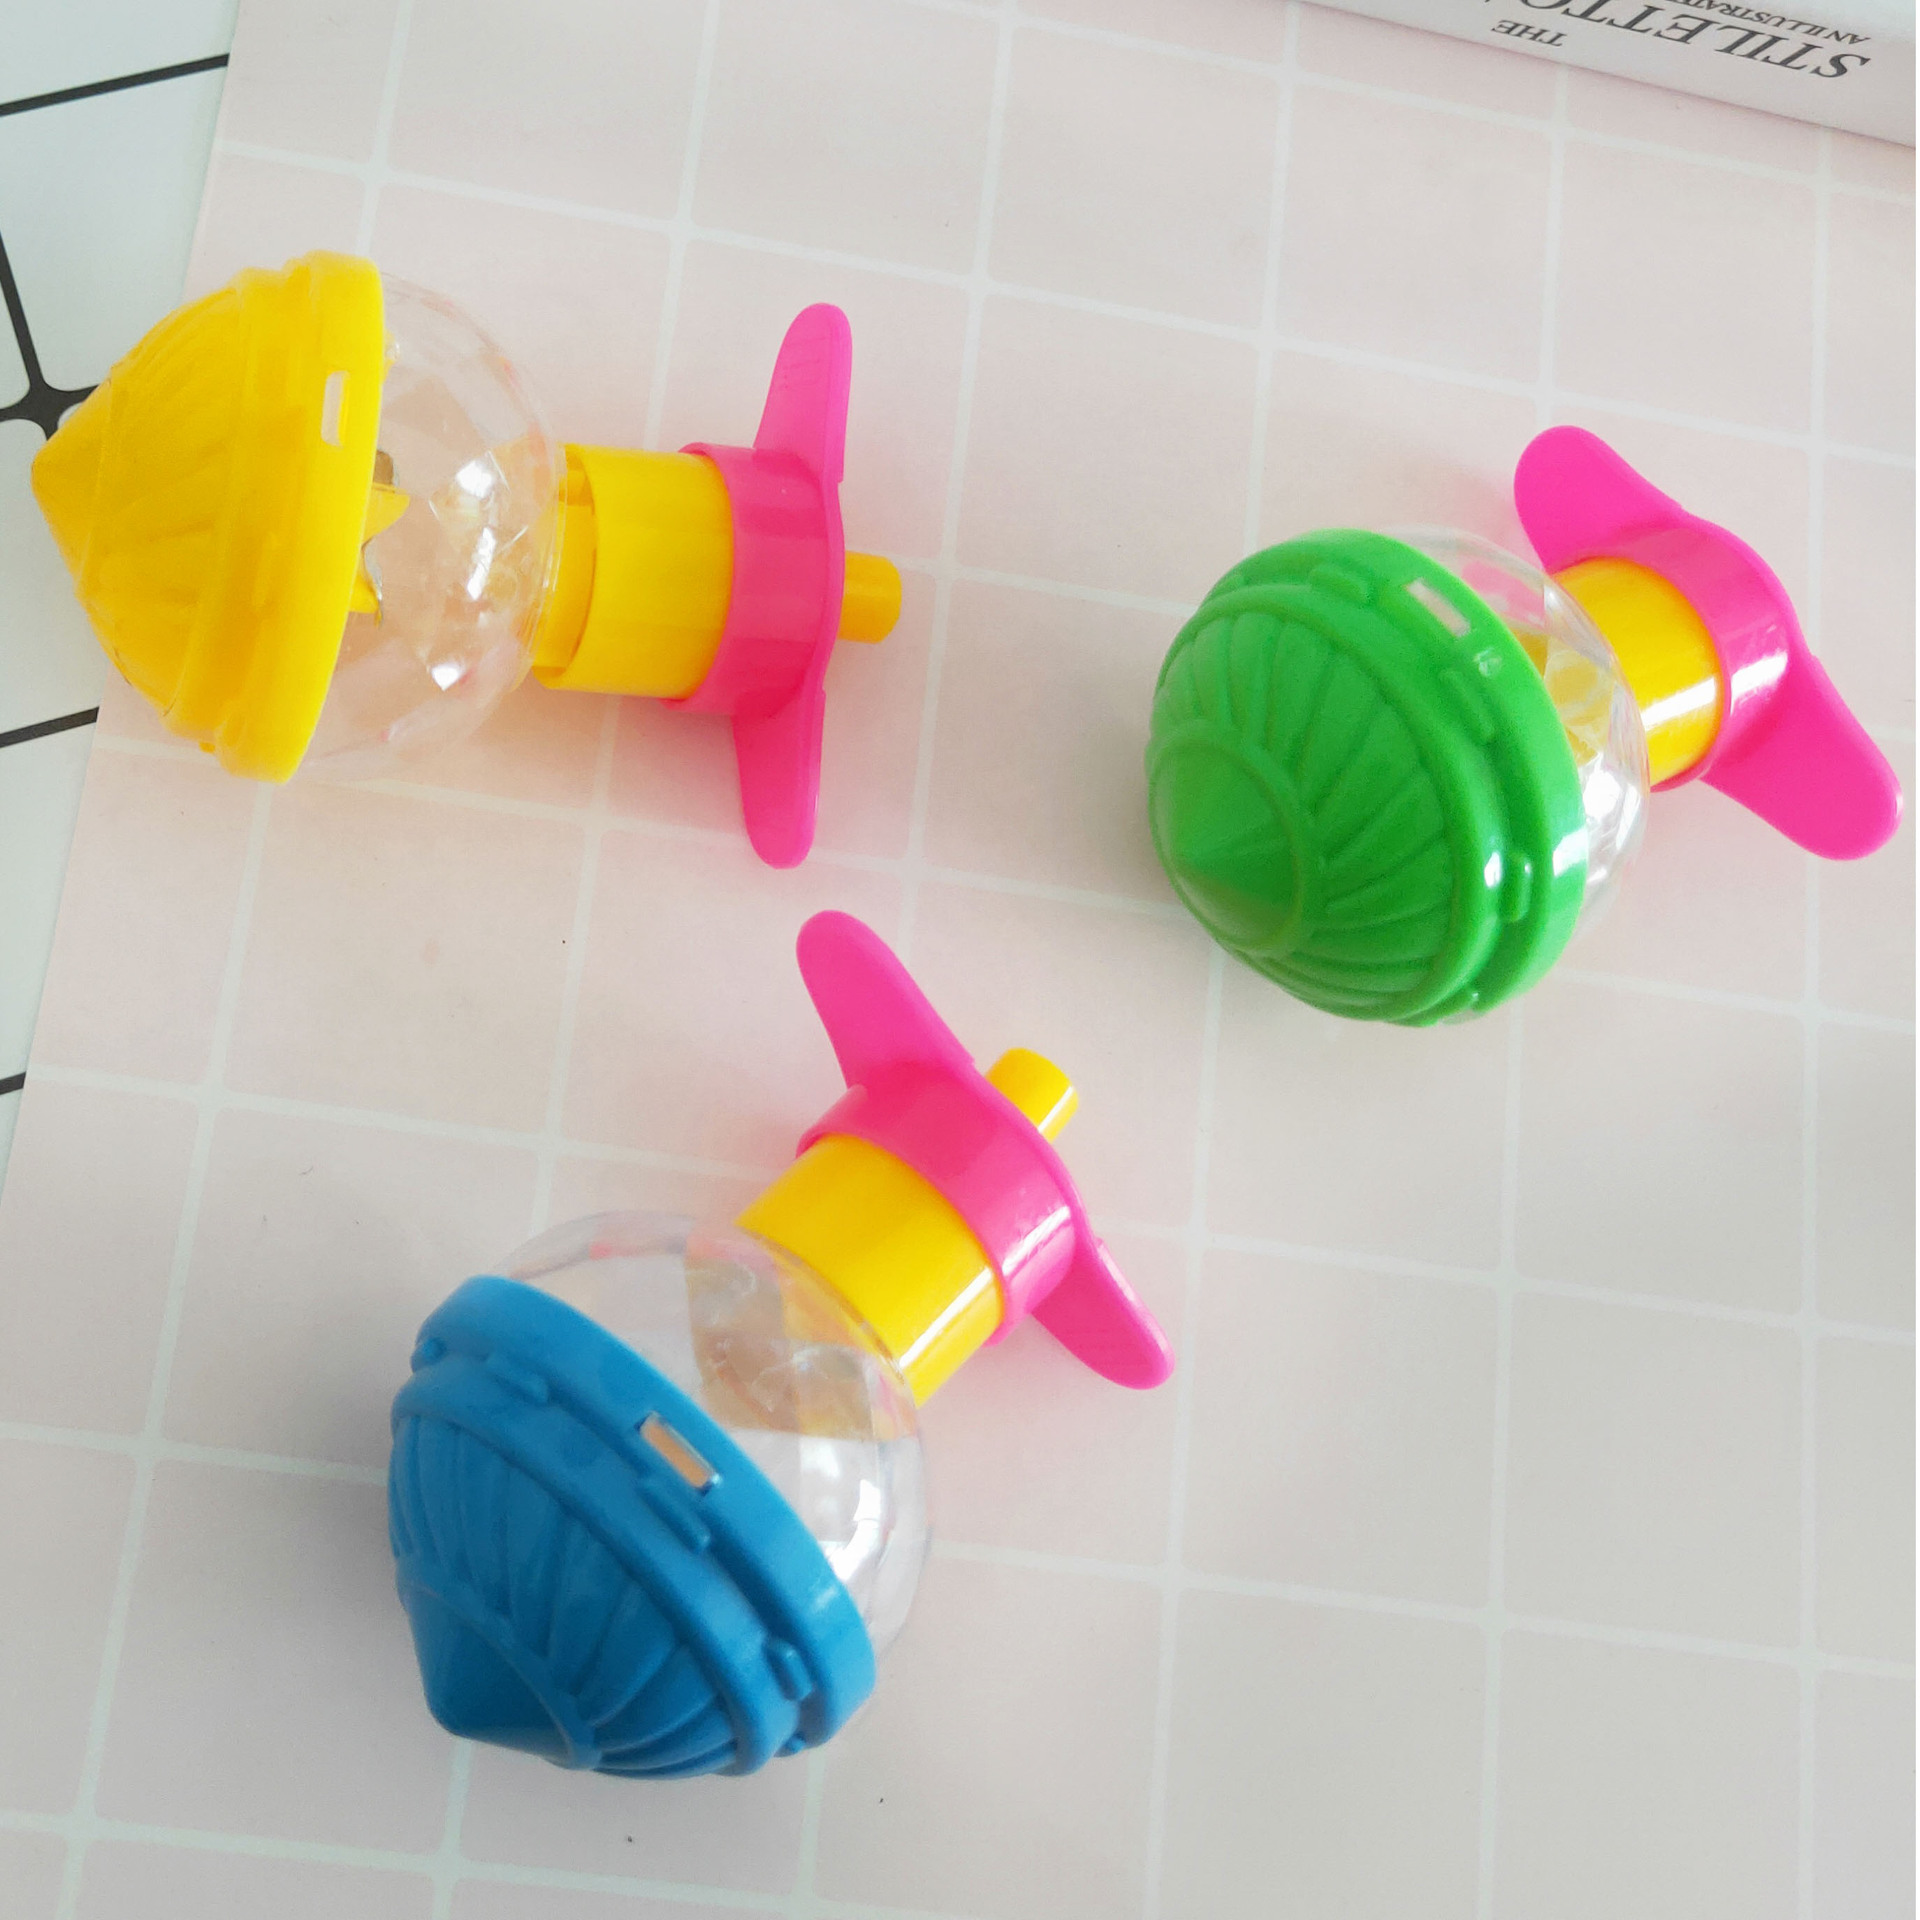 Children Toys Classic Flash Spinning Top Speed Gyro with Transmitter Relieve Stress Toy for children funny Luminous Peg-Top Gyro(China)